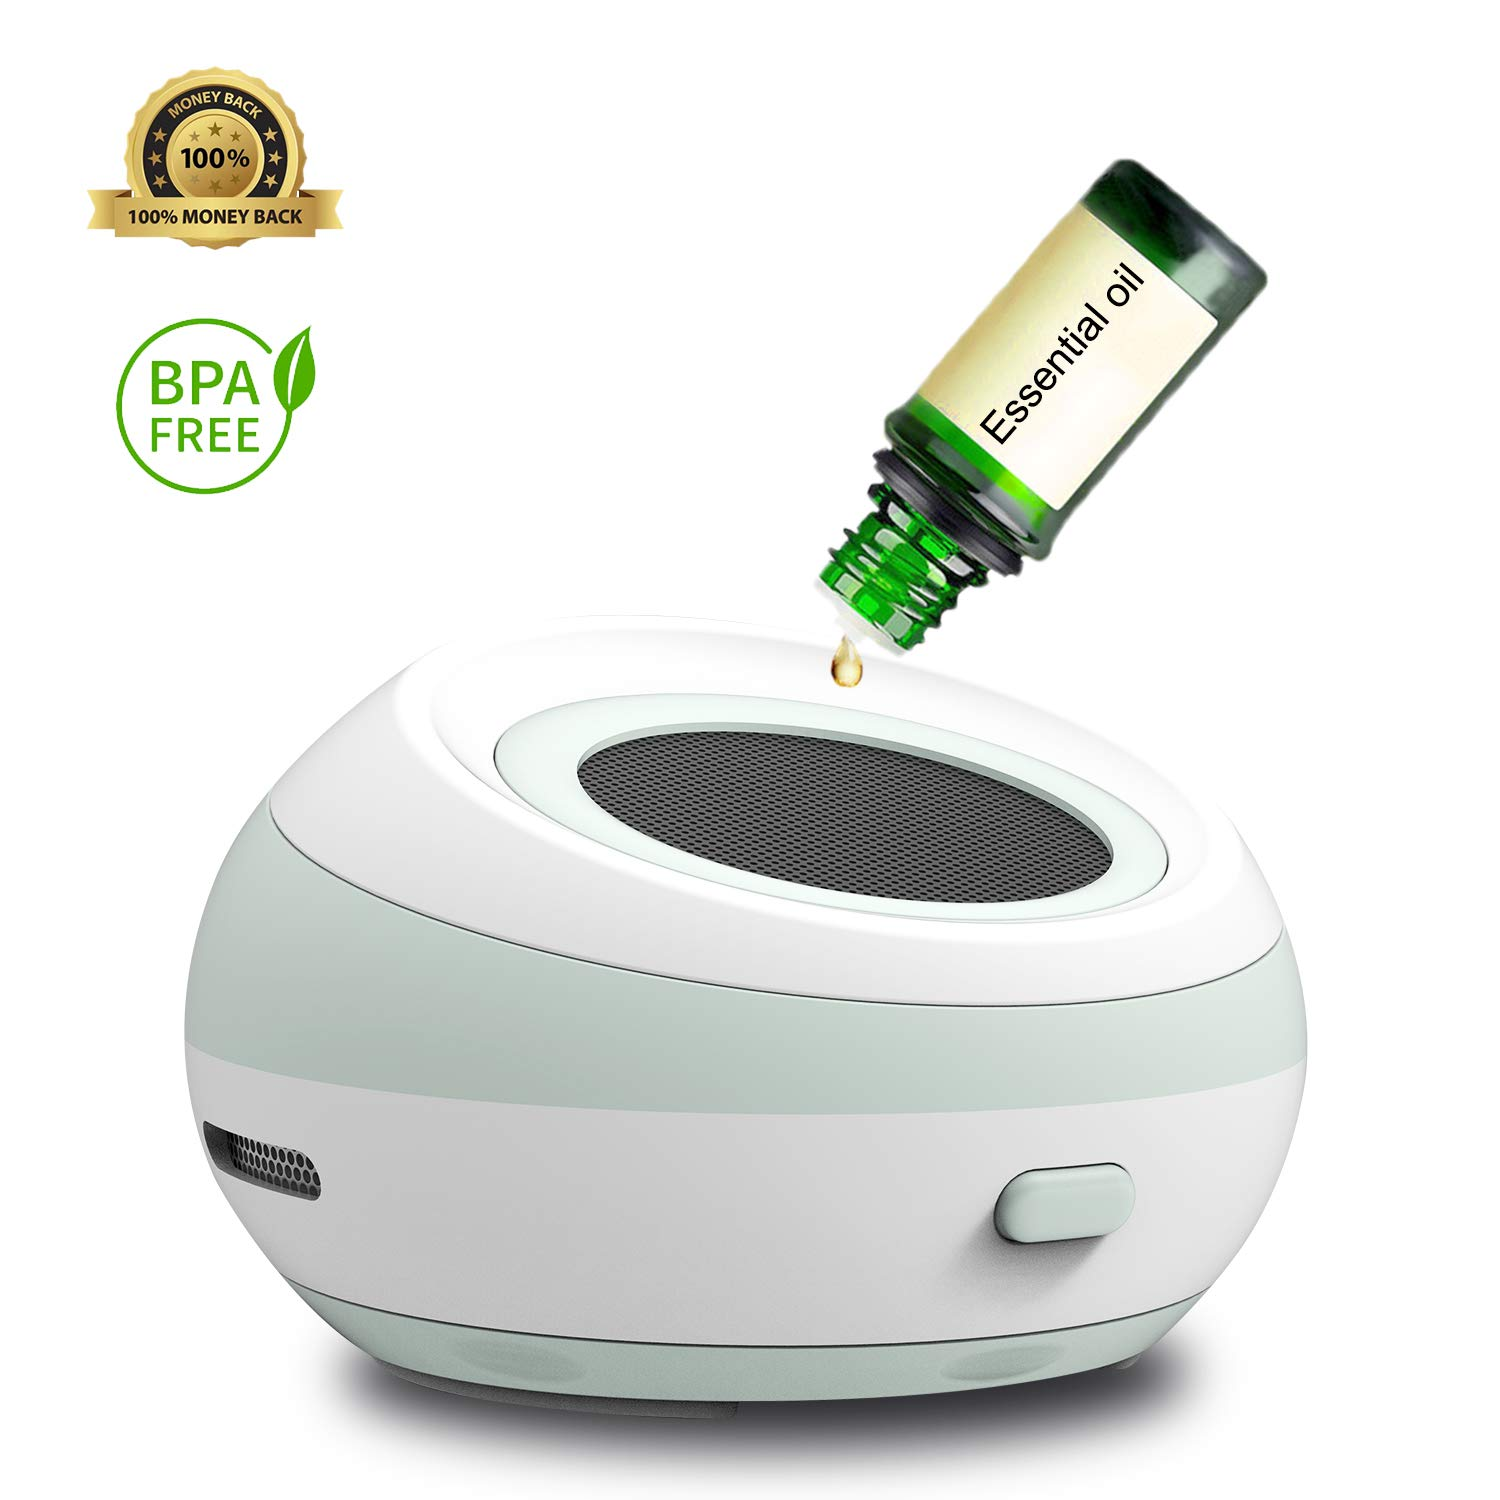 Waterless Oil Diffuser Battery Powered with USB Charging Cord, Fragrance Aromatherapy Fan Diffuser Portable Travel Aroma Diffuser for Car and Small Room